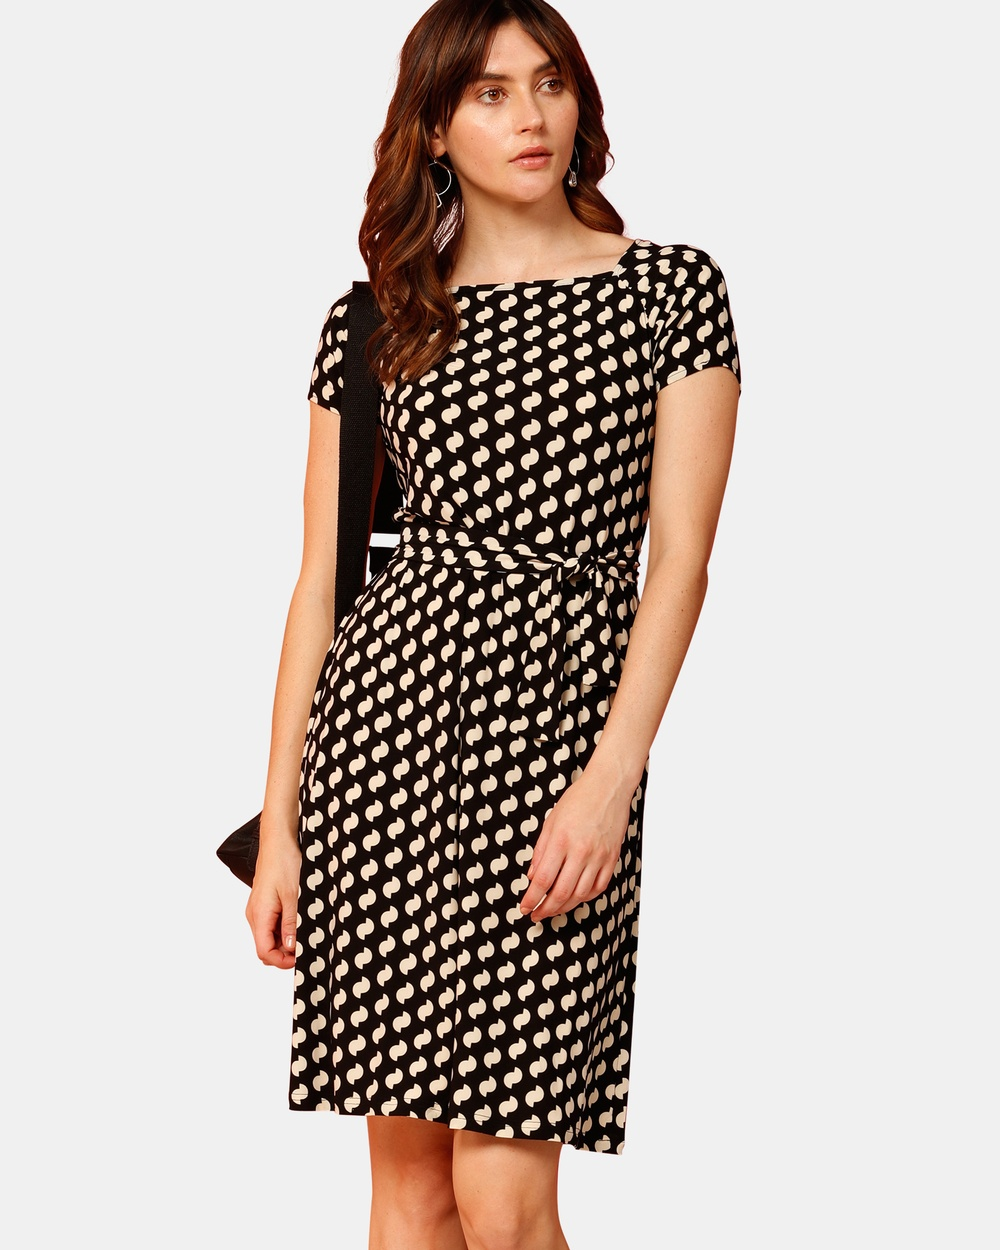 SACHA DRAKE Black Inscope Arch Cap Sleeve Dress